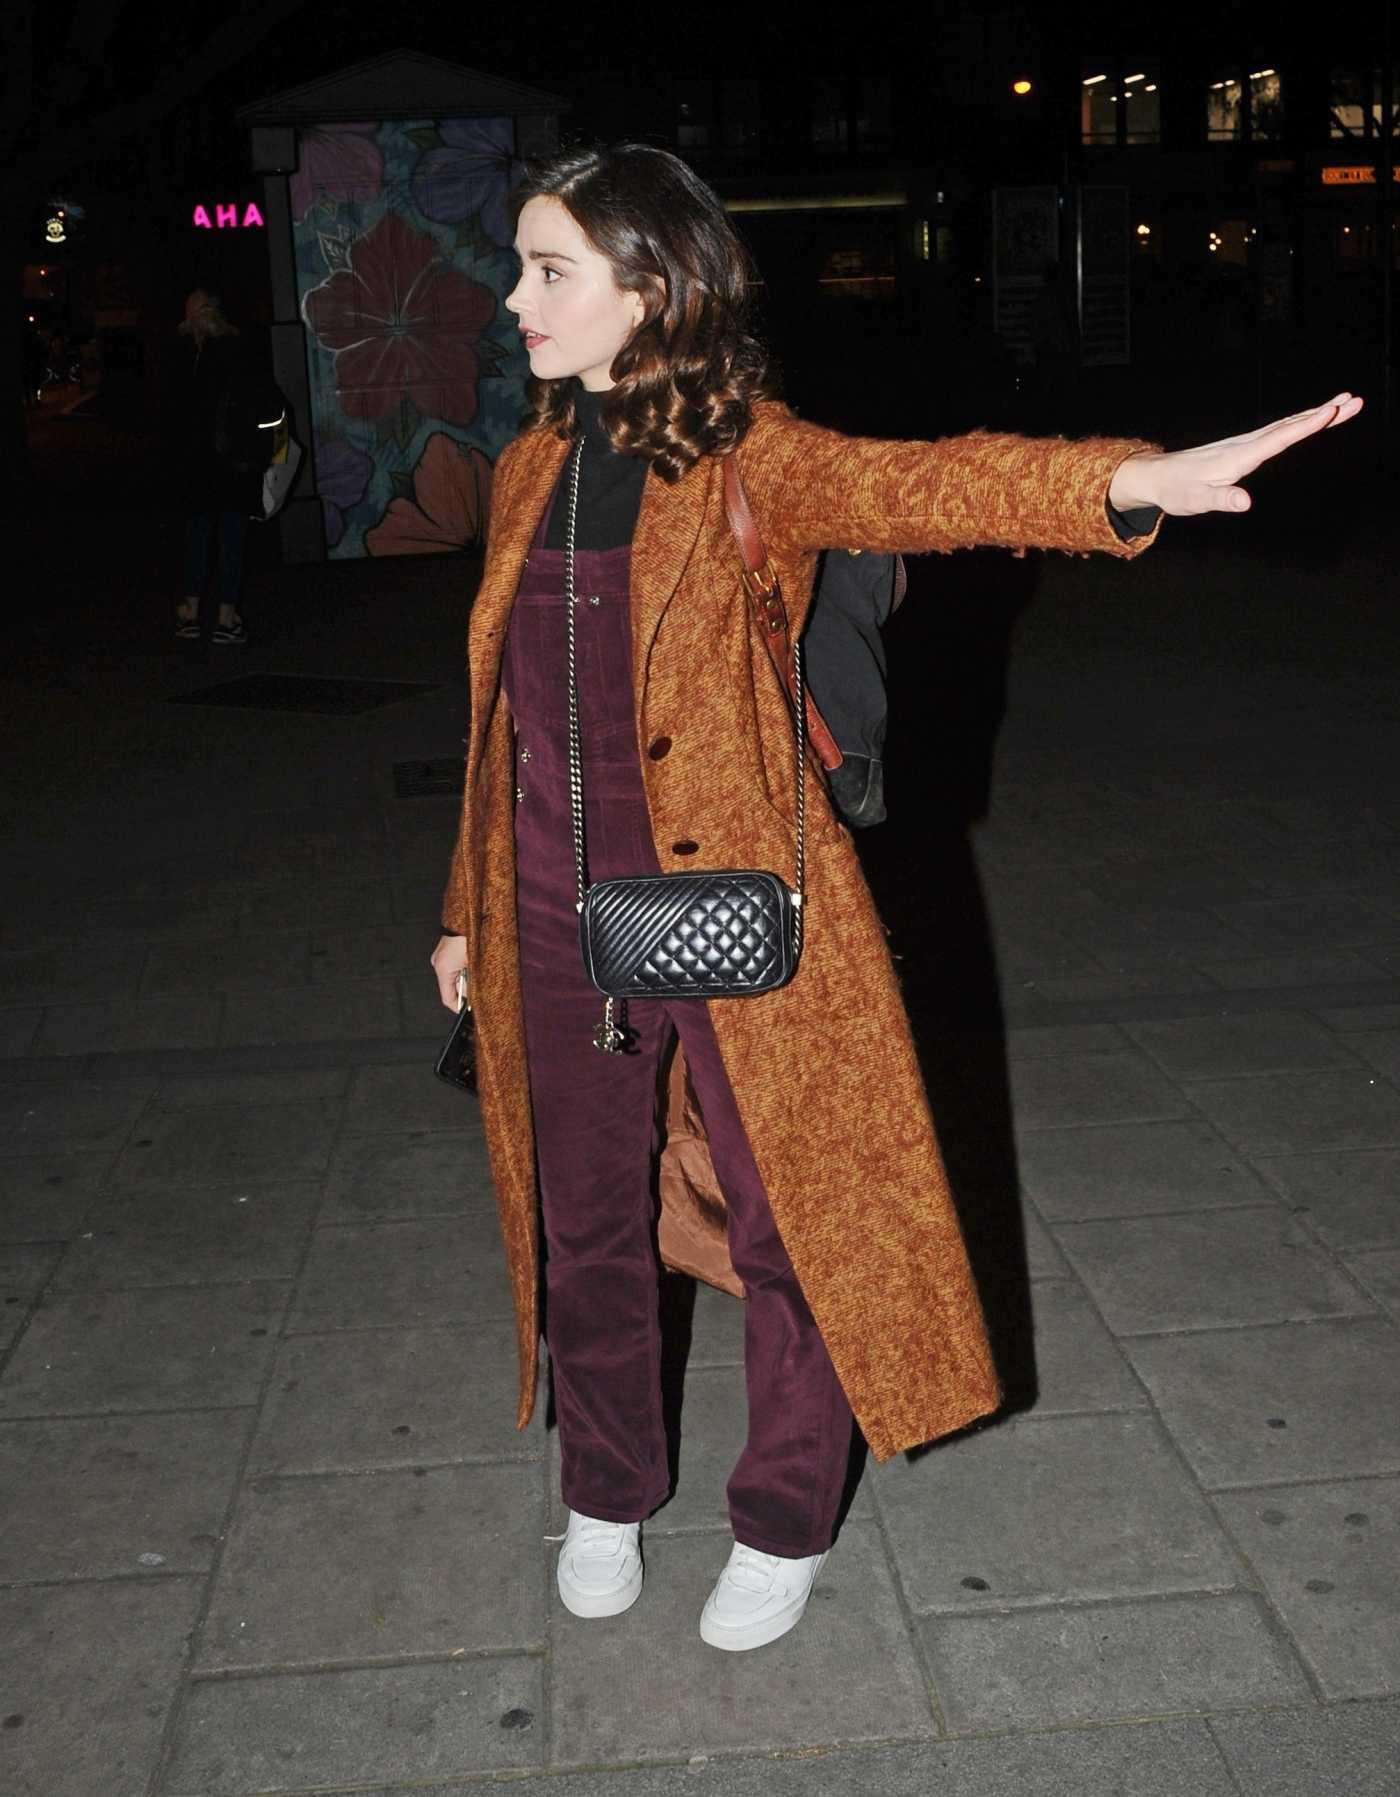 Jenna Coleman in an Orange Coat Leaves the Old Vic Theatre in London 04/20/2019